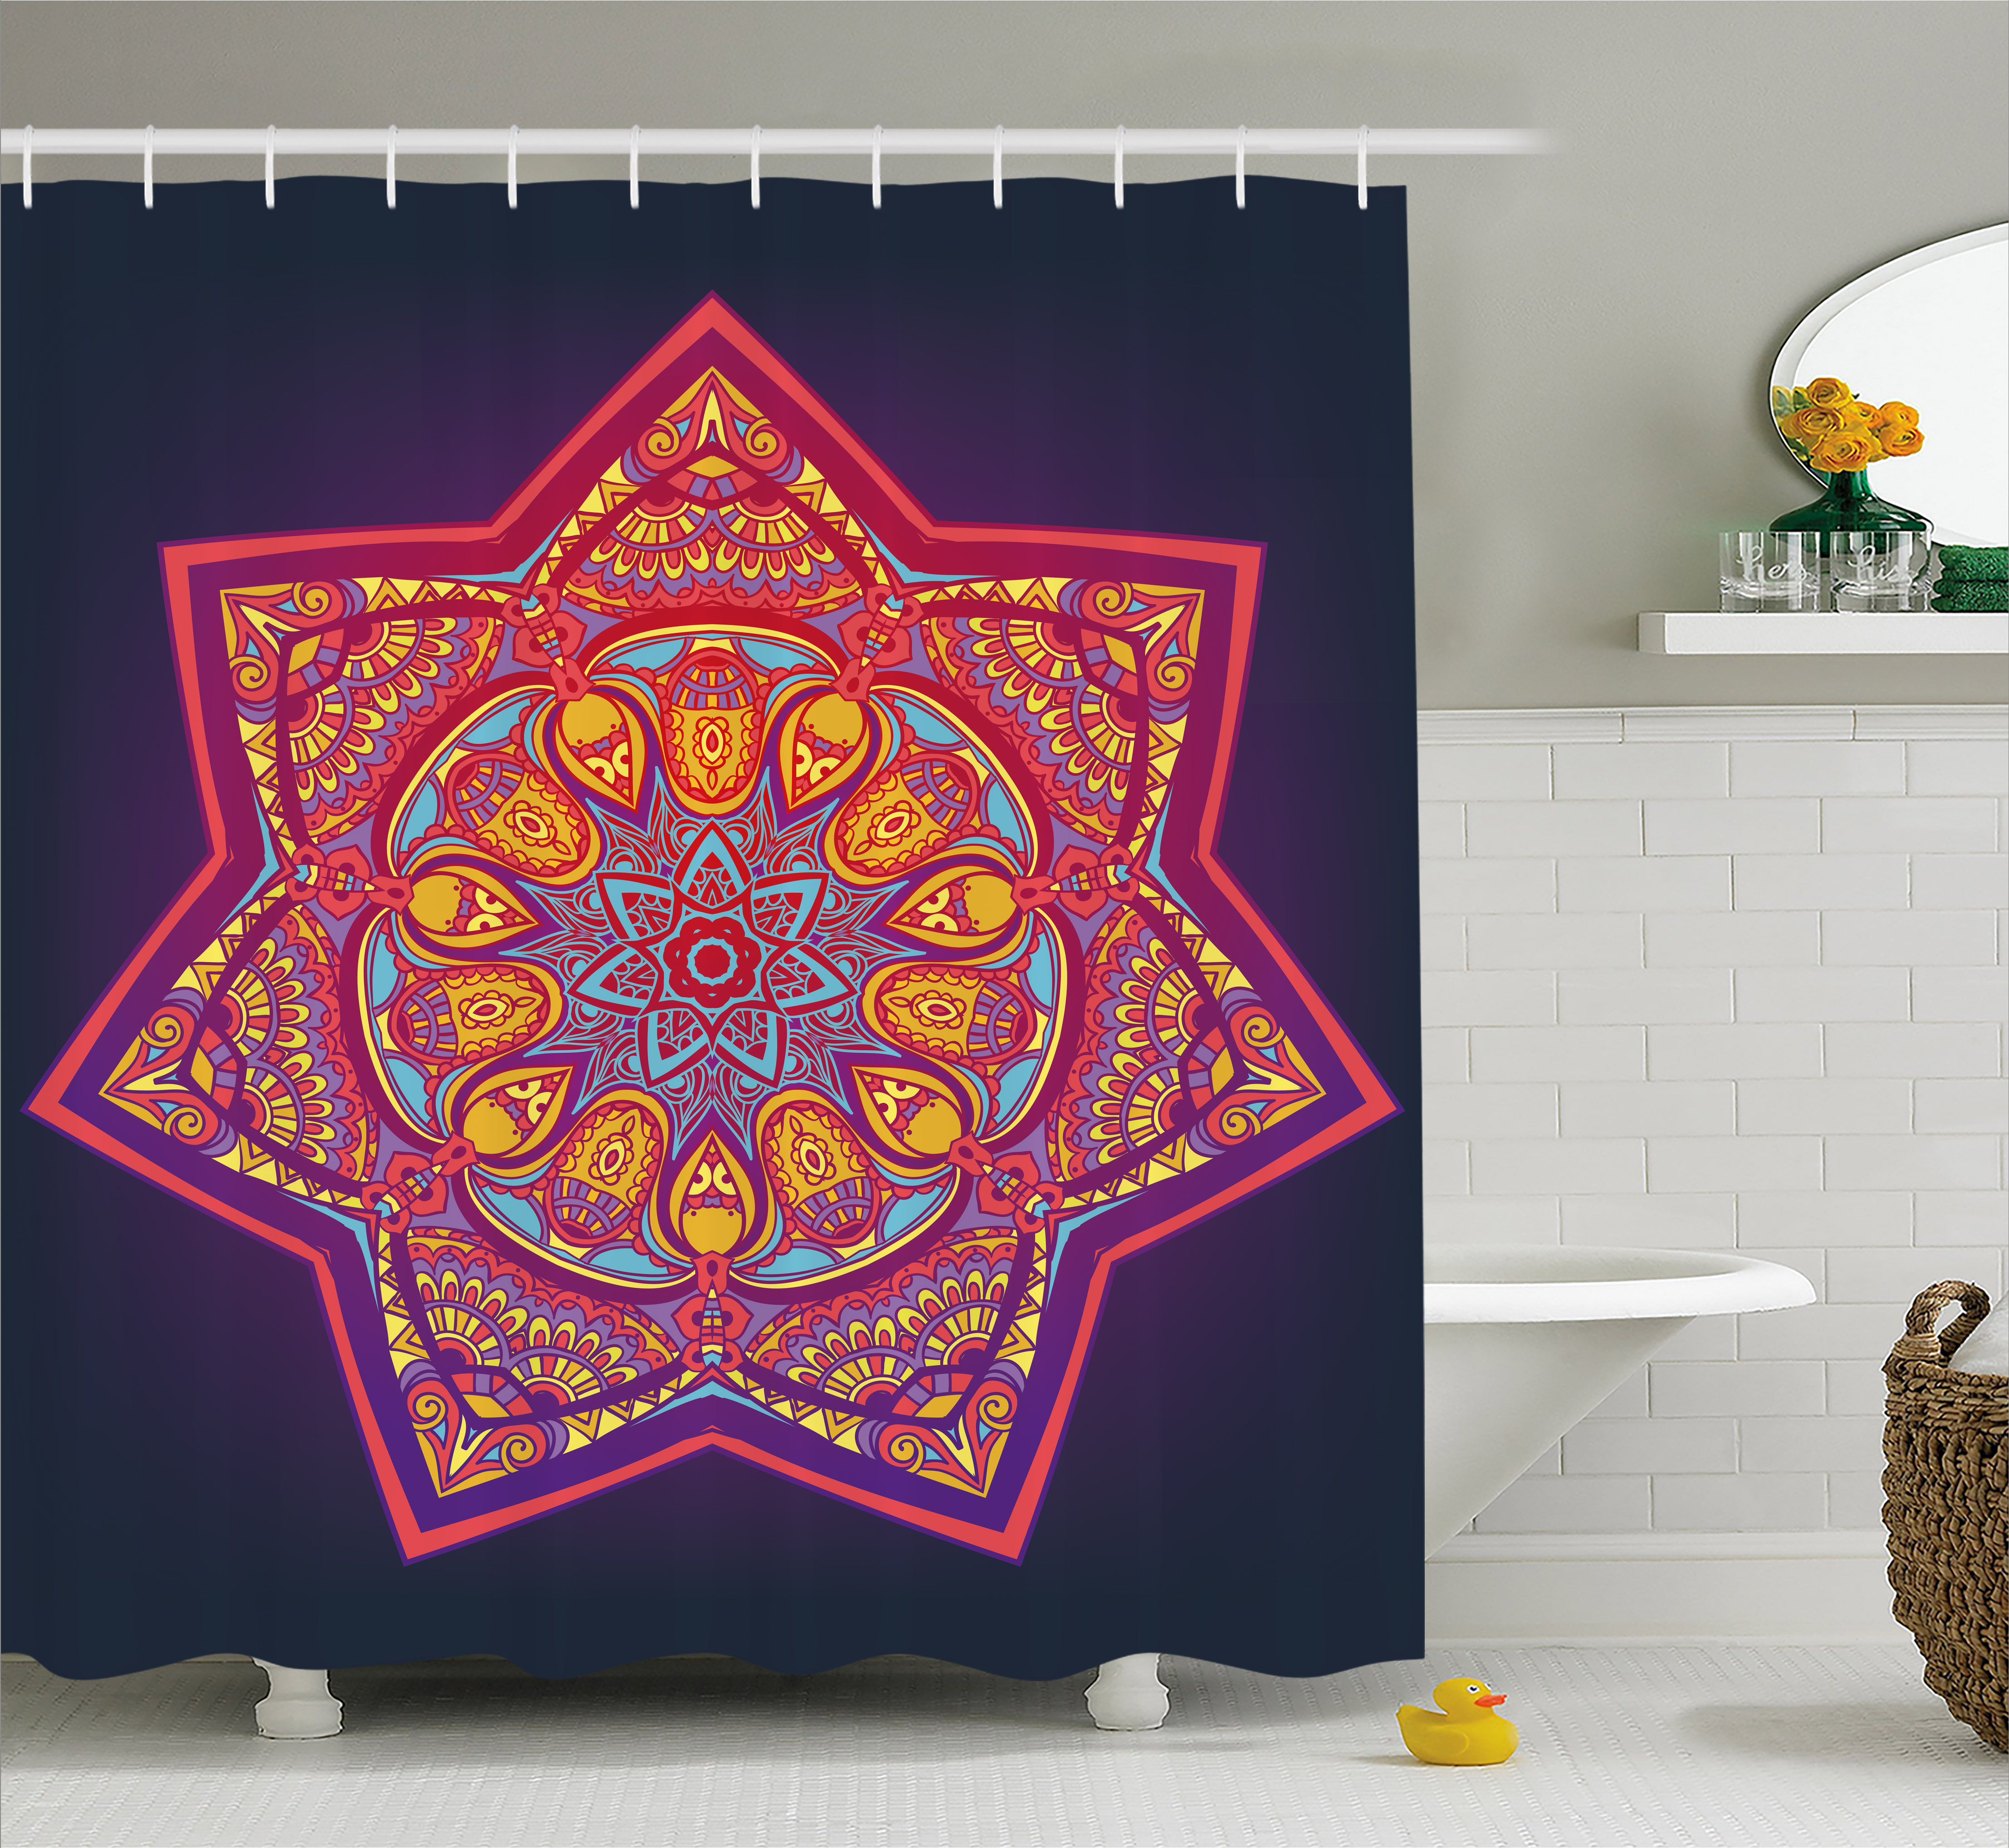 Lotus Shower Curtain, Ornamental Vibrant Mandala Universe Kaleidoscope Folk Tribal Meditation Illustration, Fabric Bathroom Set with Hooks, 69W X 84L Inches Extra Long, Multicolor, by Ambesonne